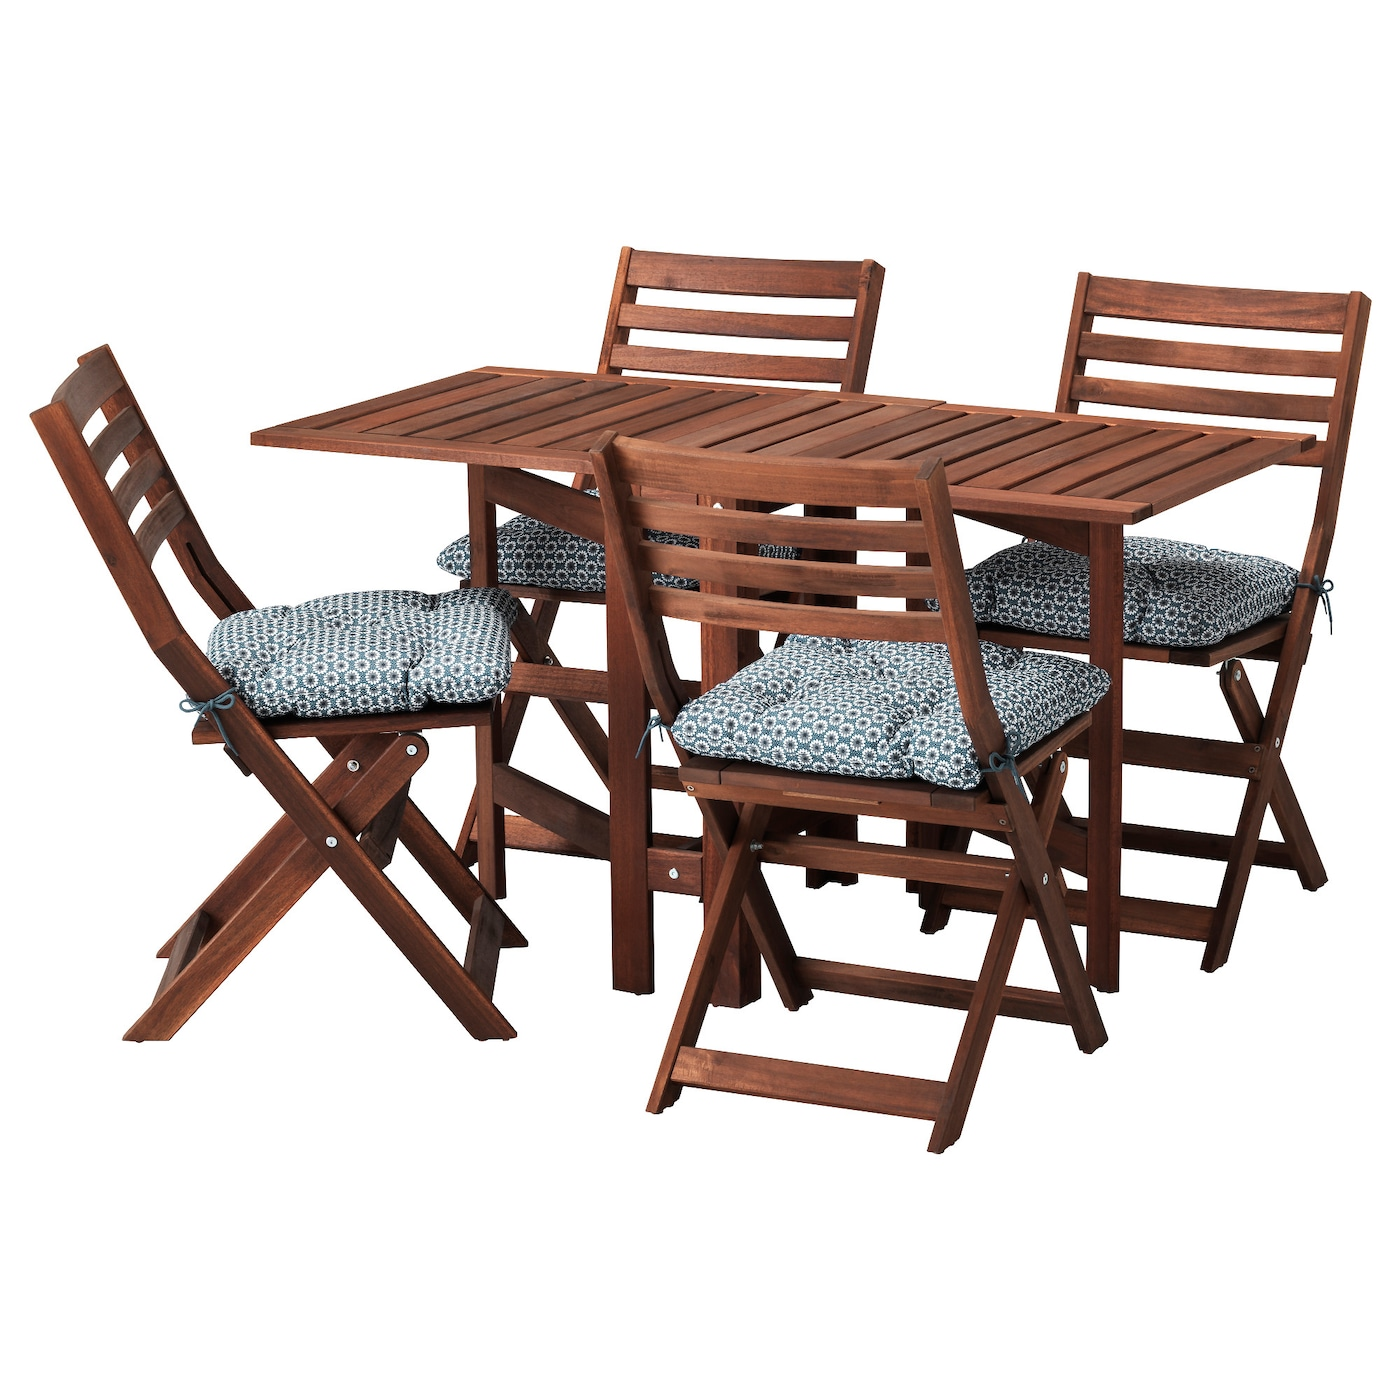 Pplar table 4 folding chairs outdoor brown stained for Table 4 personnes ikea